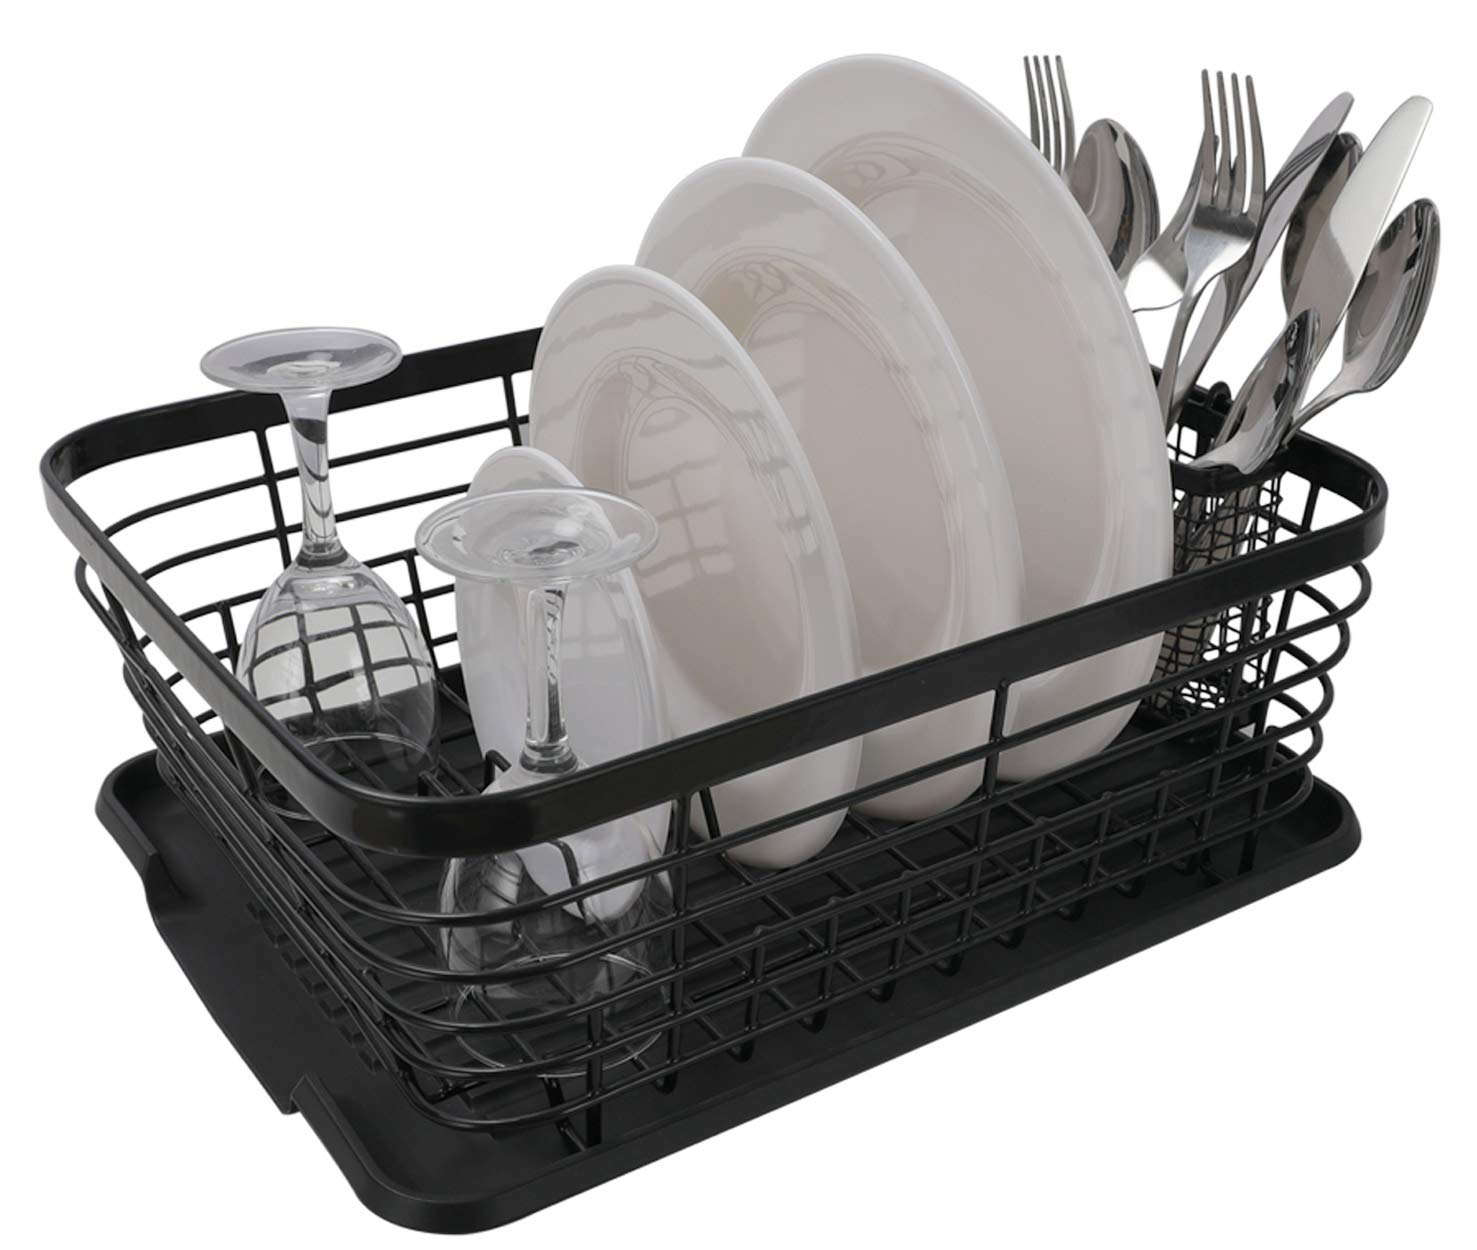 Esylife Kitchen Dish Drainer Drying Rack With Drip Tray